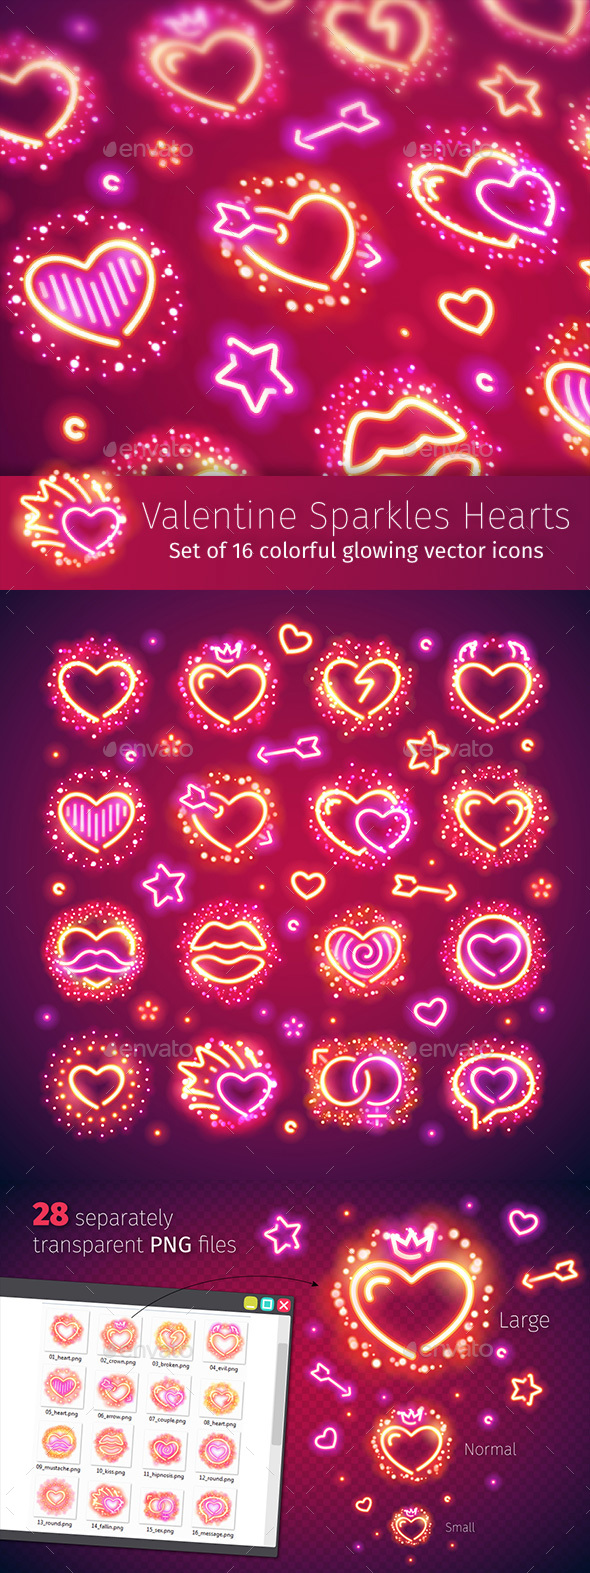 Valentine Hearts with Sparkles - Miscellaneous Icons